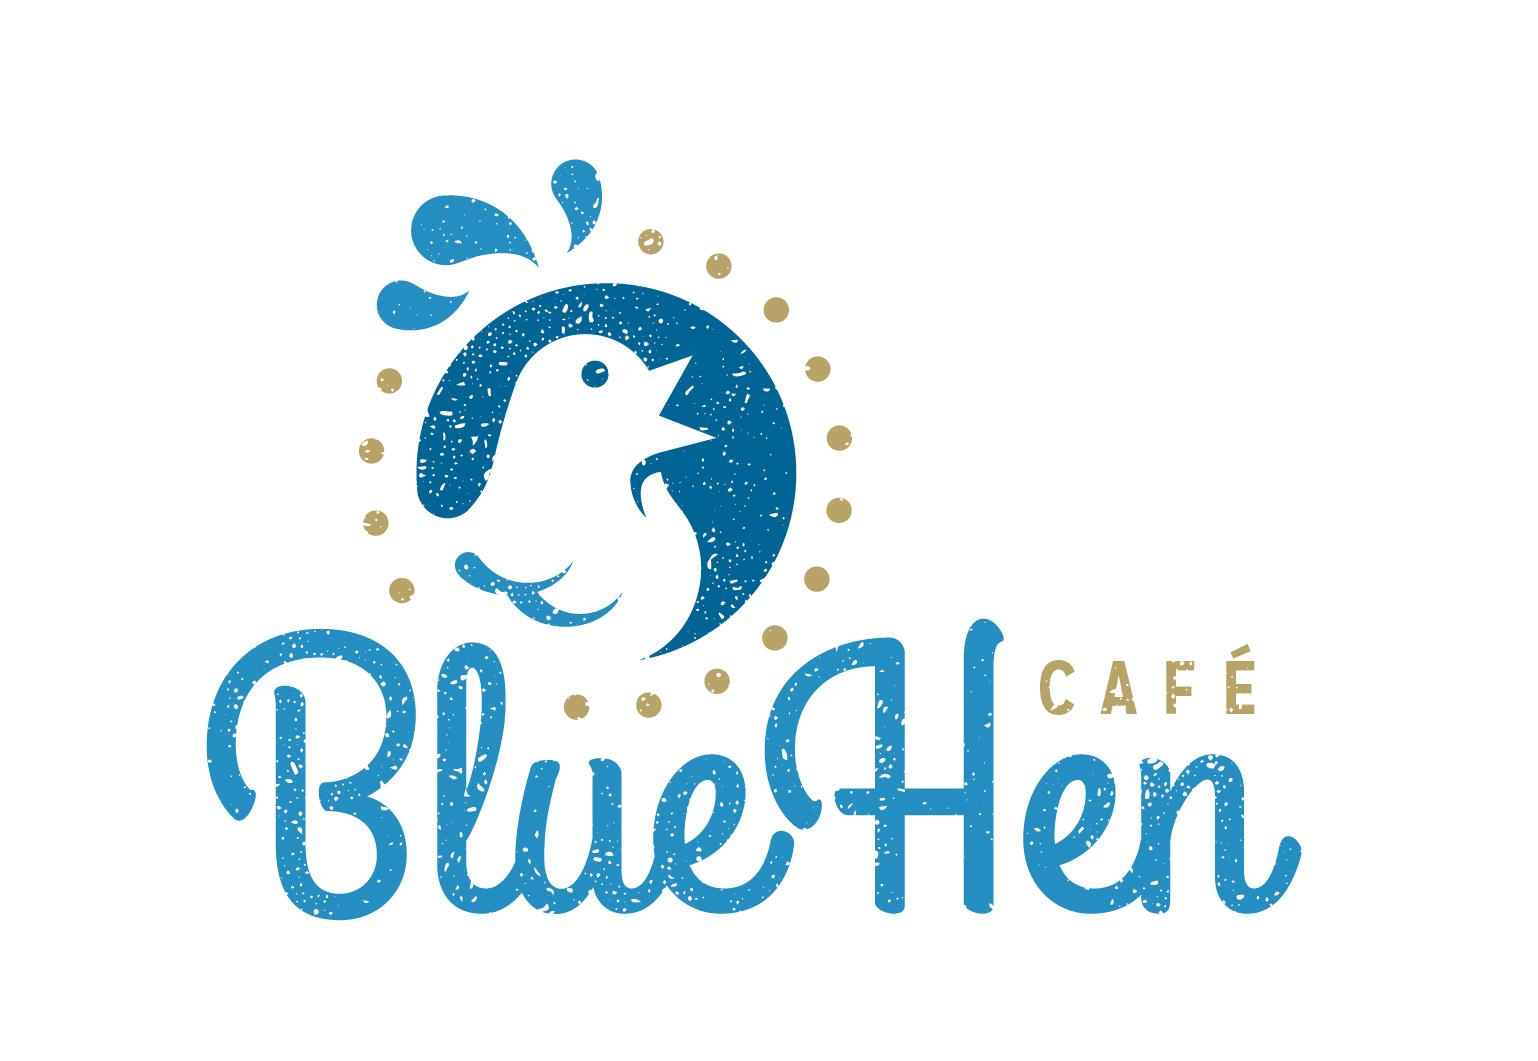 Blue Hen Cafe - image 10 - student project